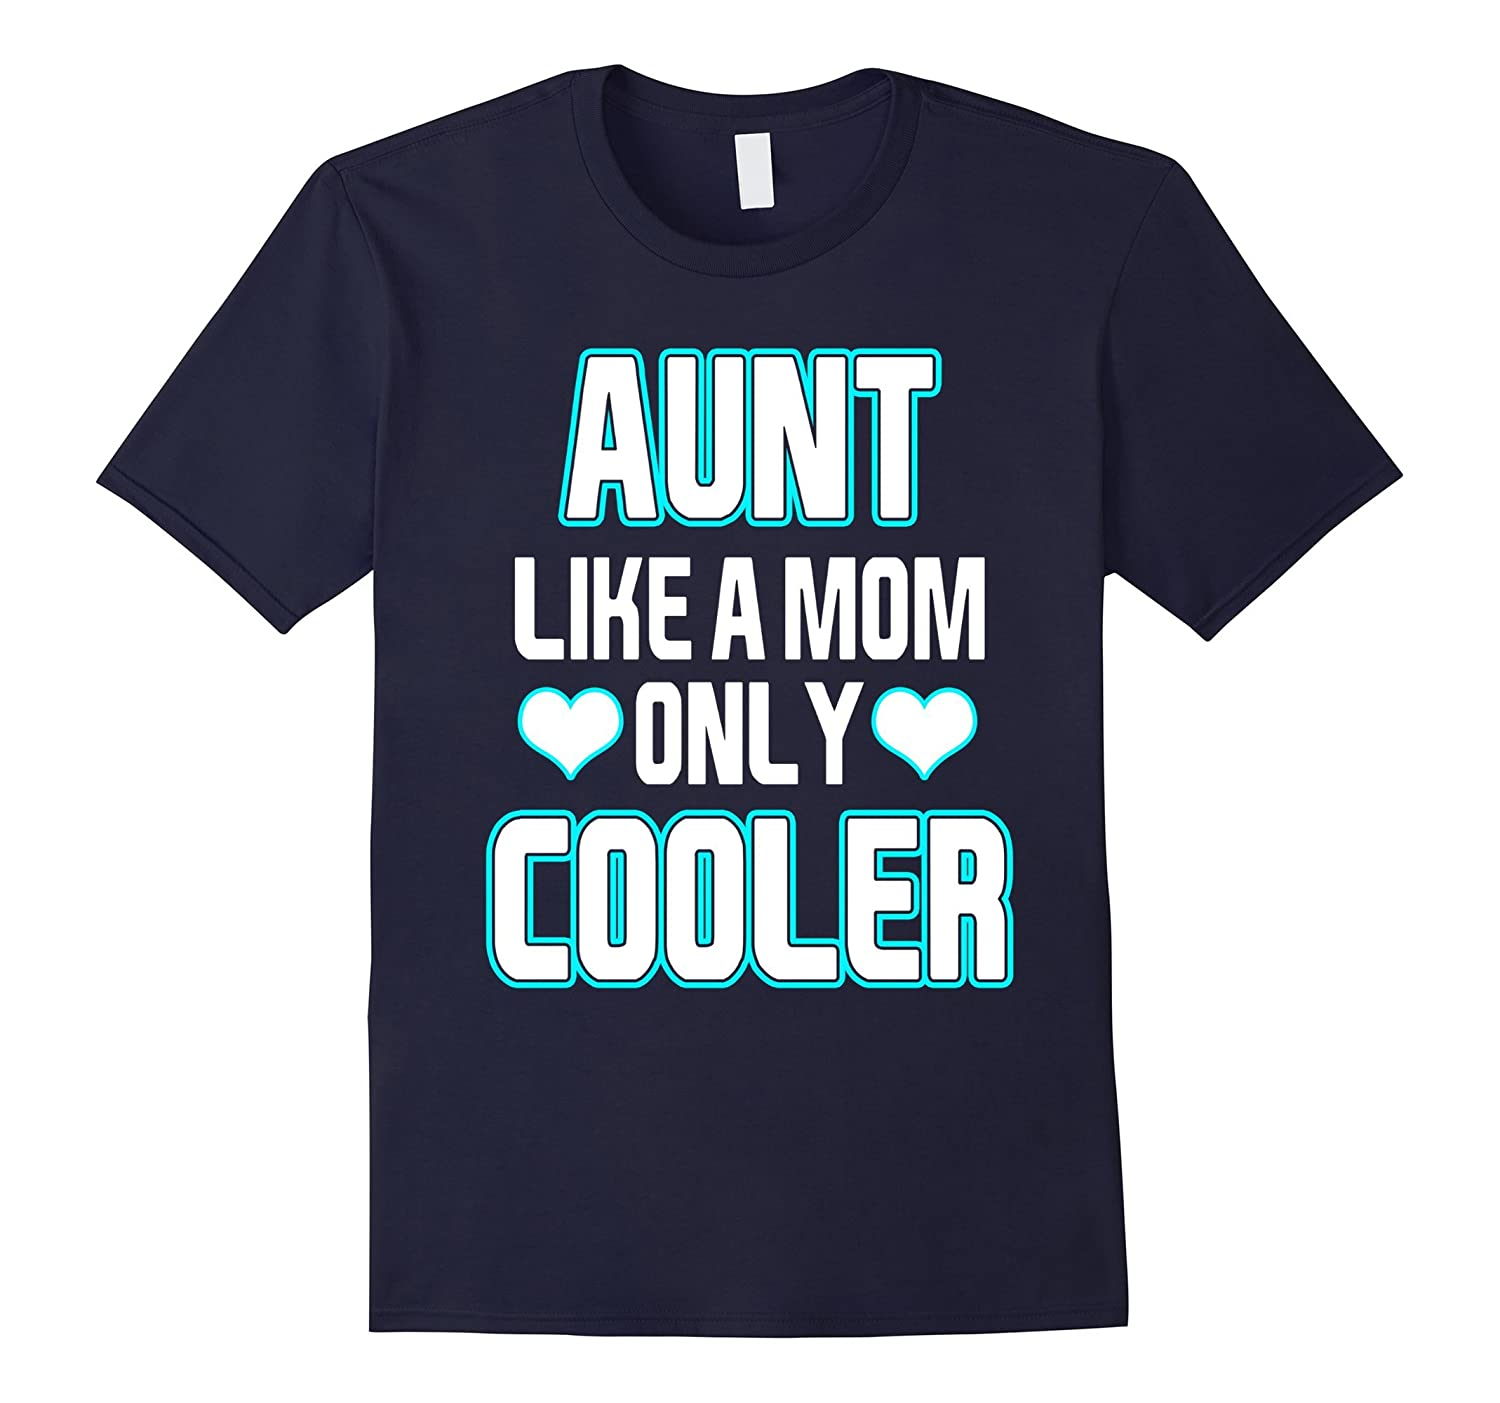 Aunt Like A Mom Only Cooler T-shirt, Aunt Like A Mother